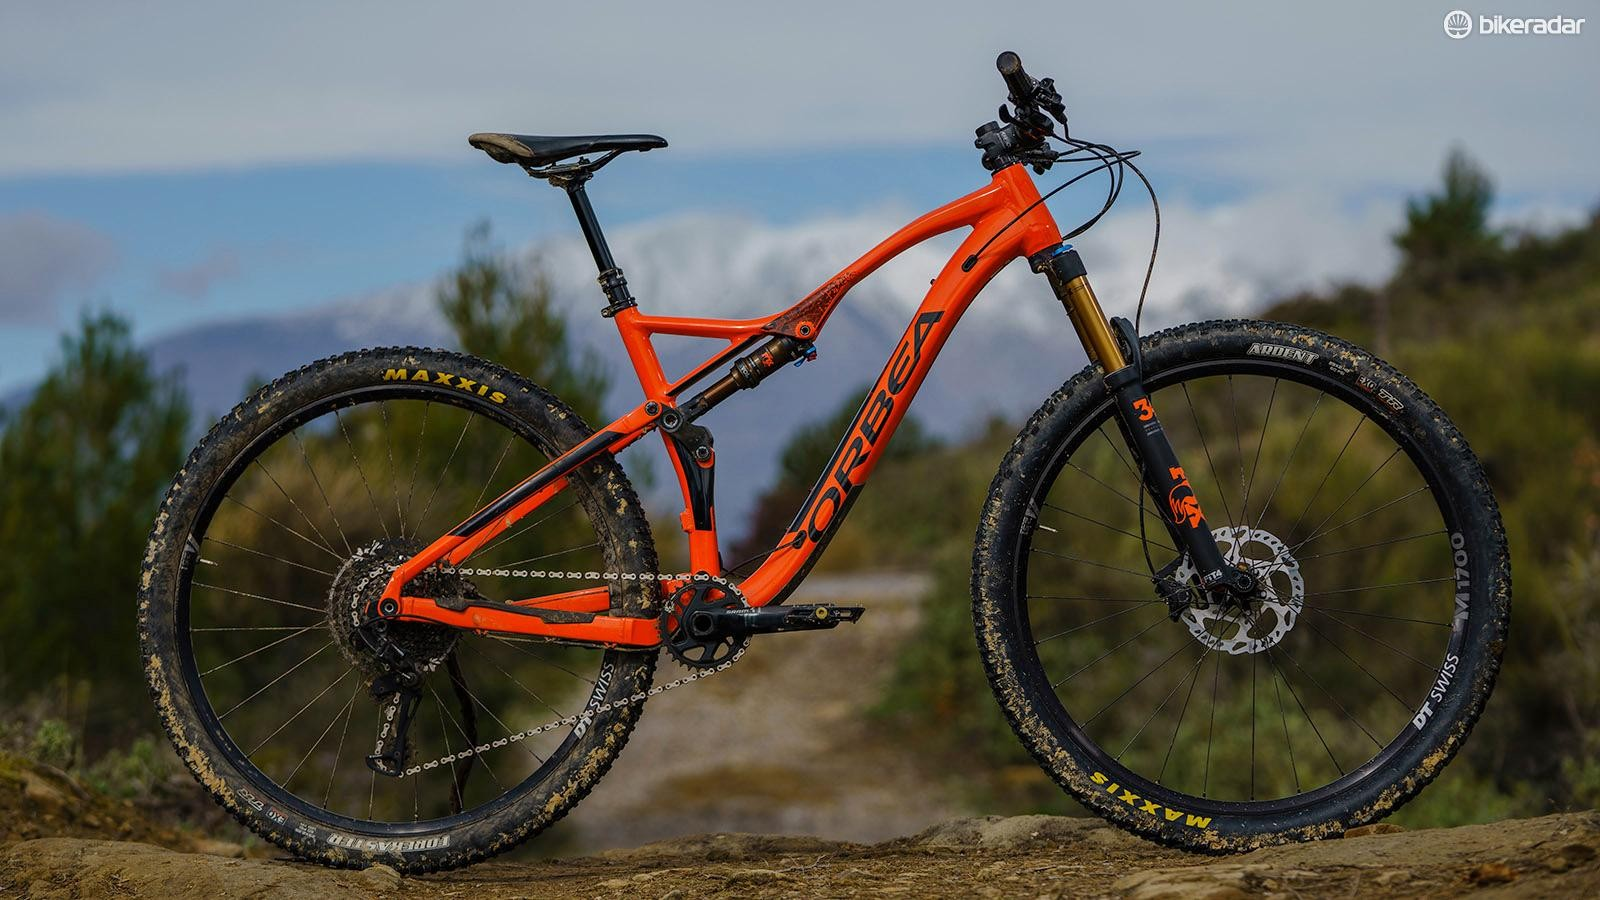 The Orbea Occam TR H10 is an alloy trail bike for long rides in the hills